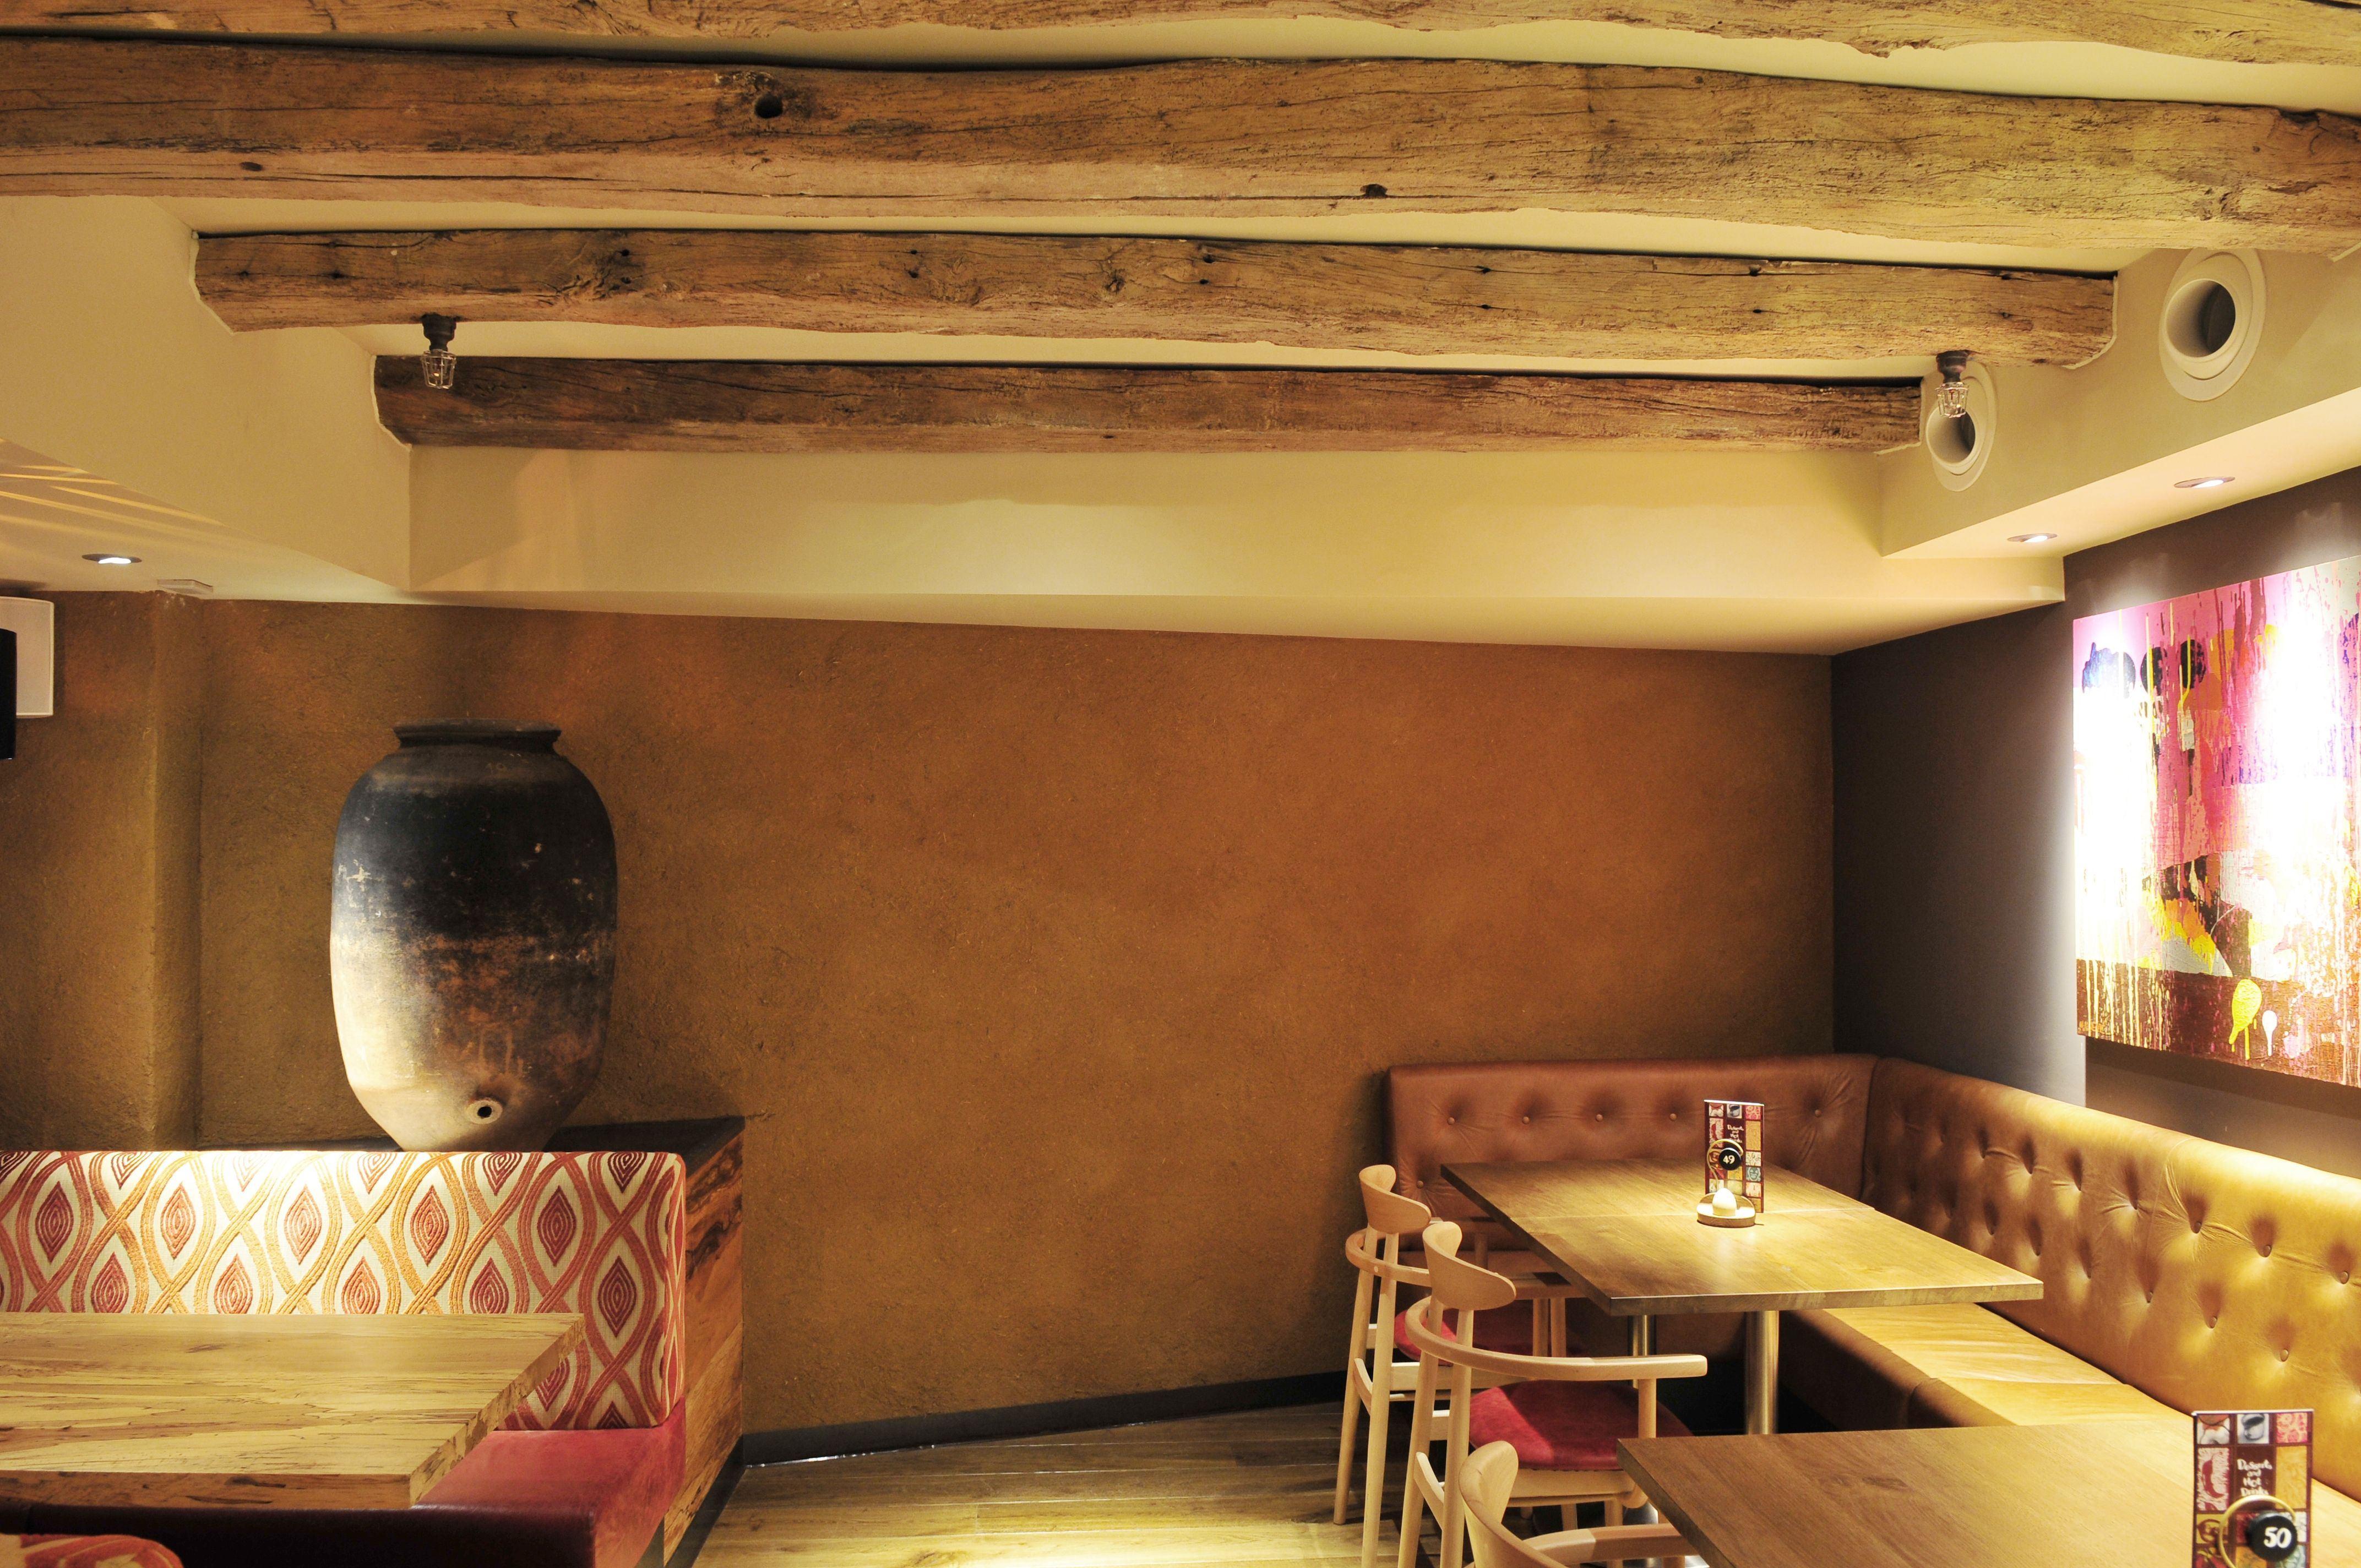 Clayworks Ltd. Natural, Unfired Clay Plasters For Interior Wall Finishes.  Warm, Breathable